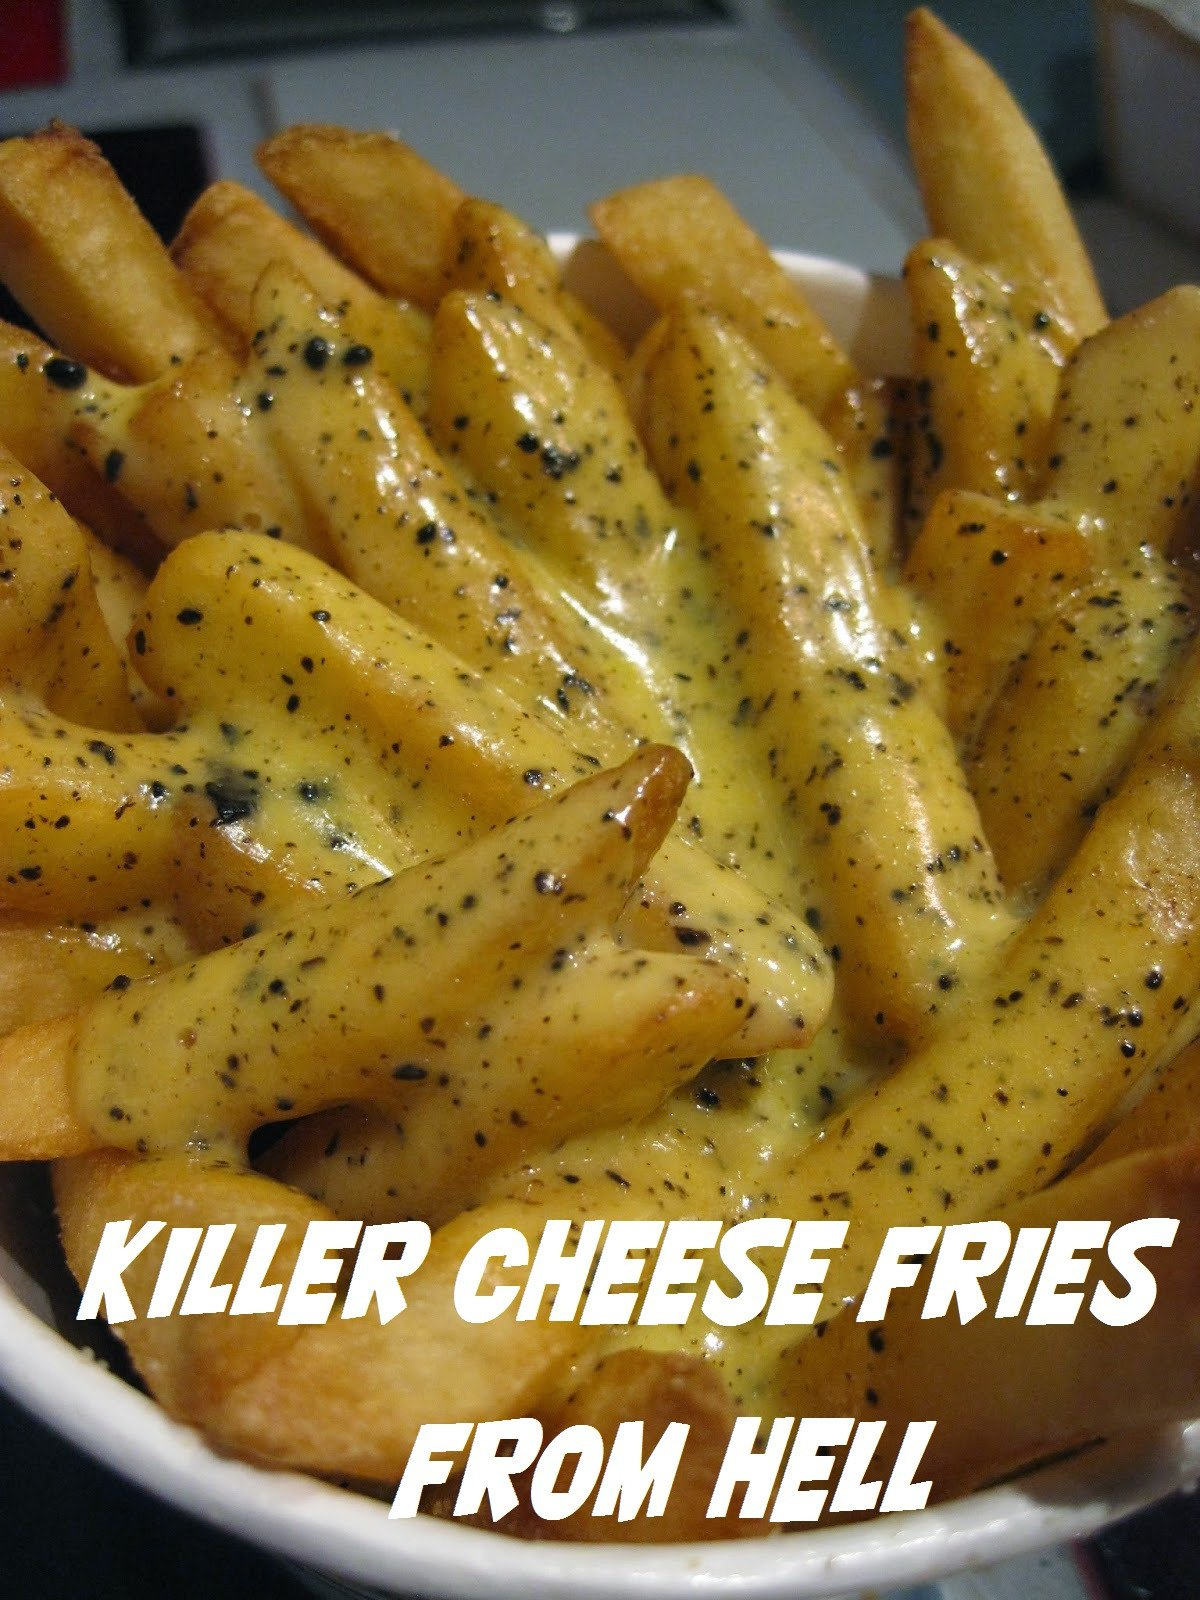 Killer Cheese Fries from Hell